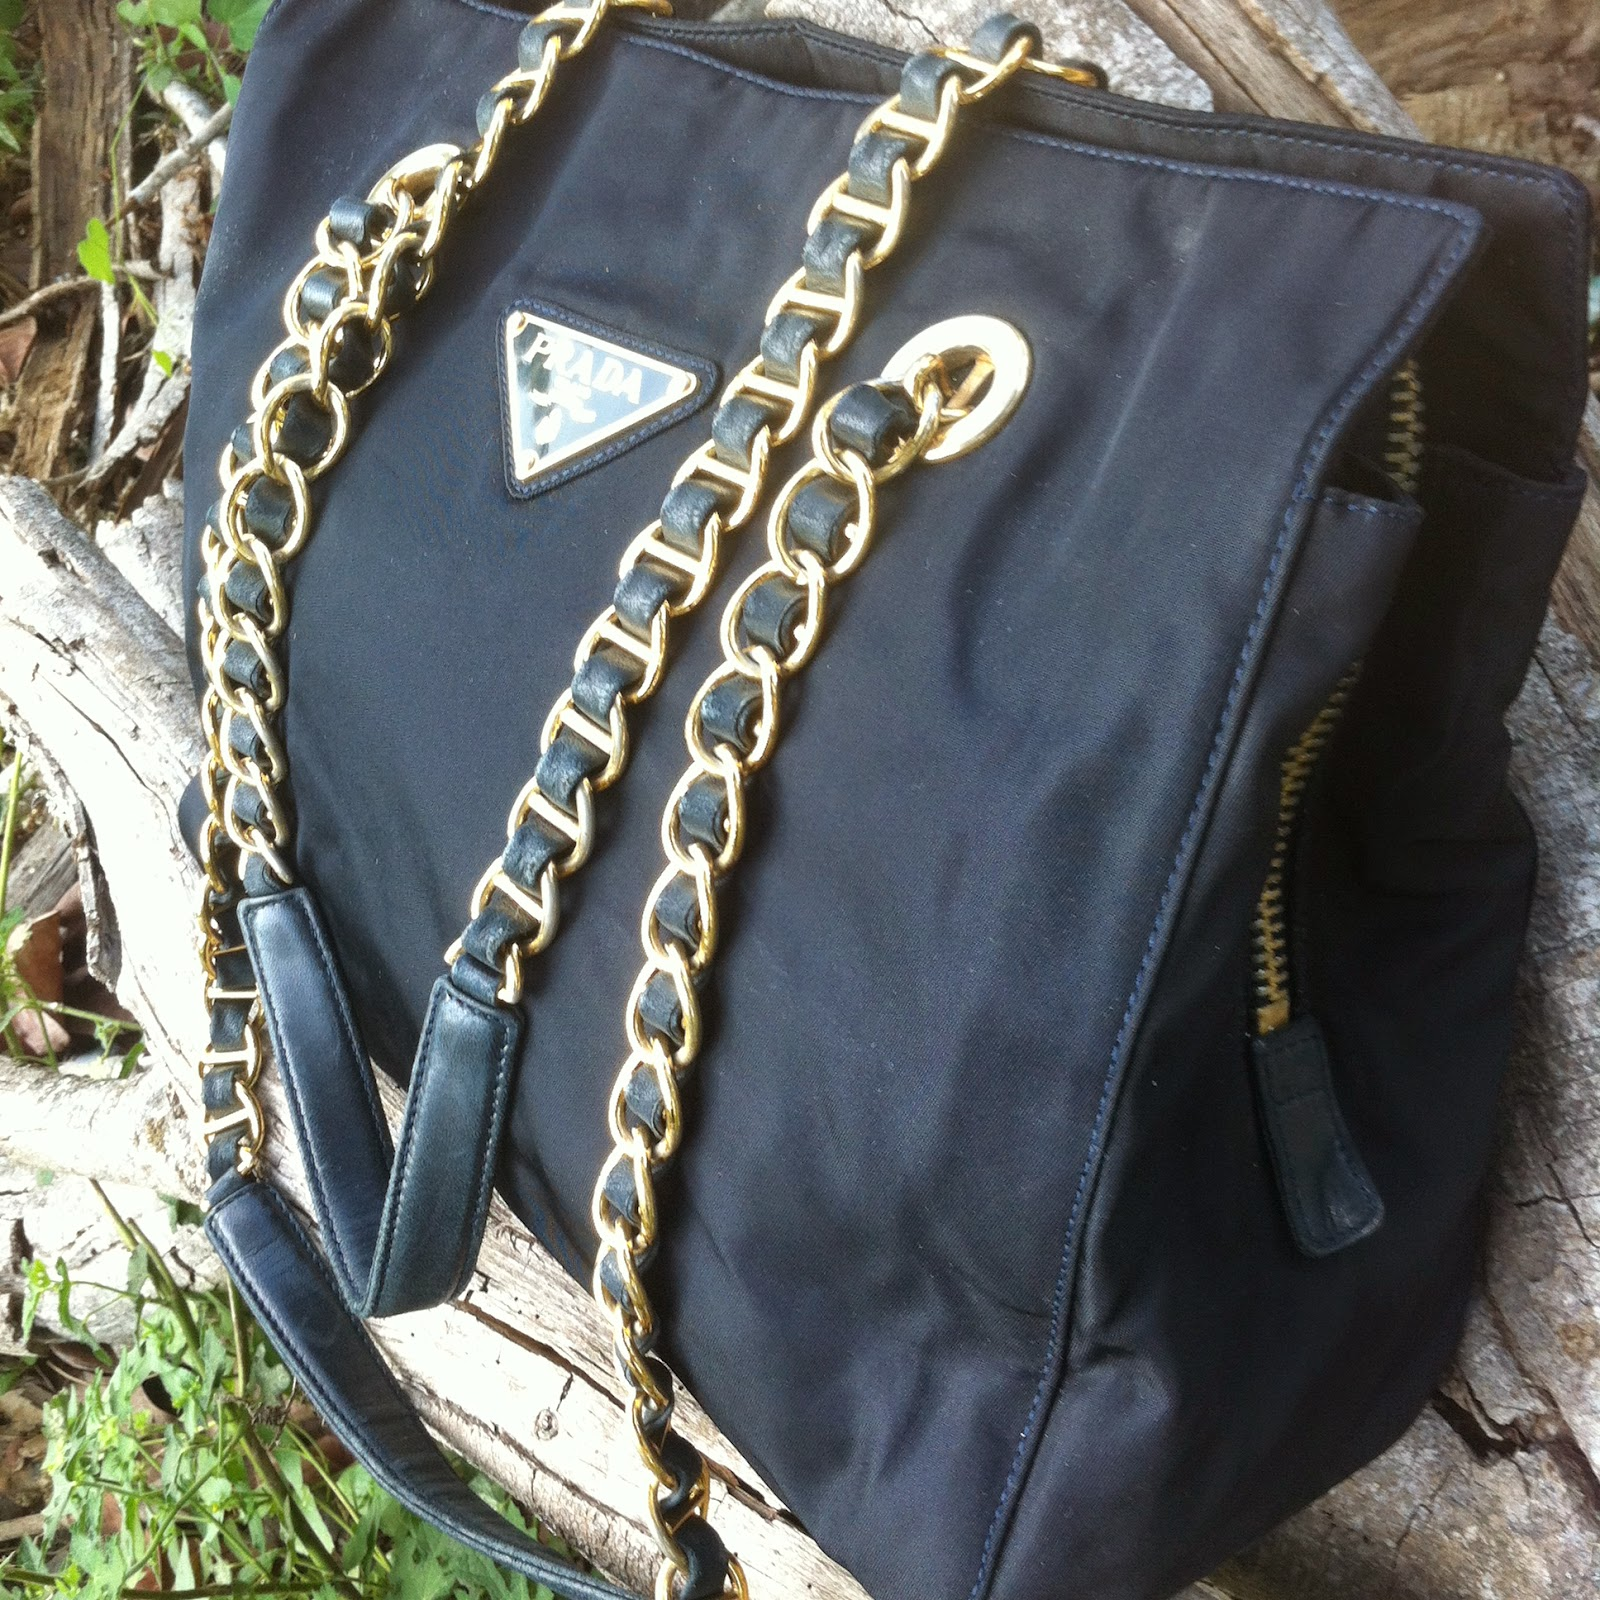 Prada Gold Chain Shoulder Bag 19